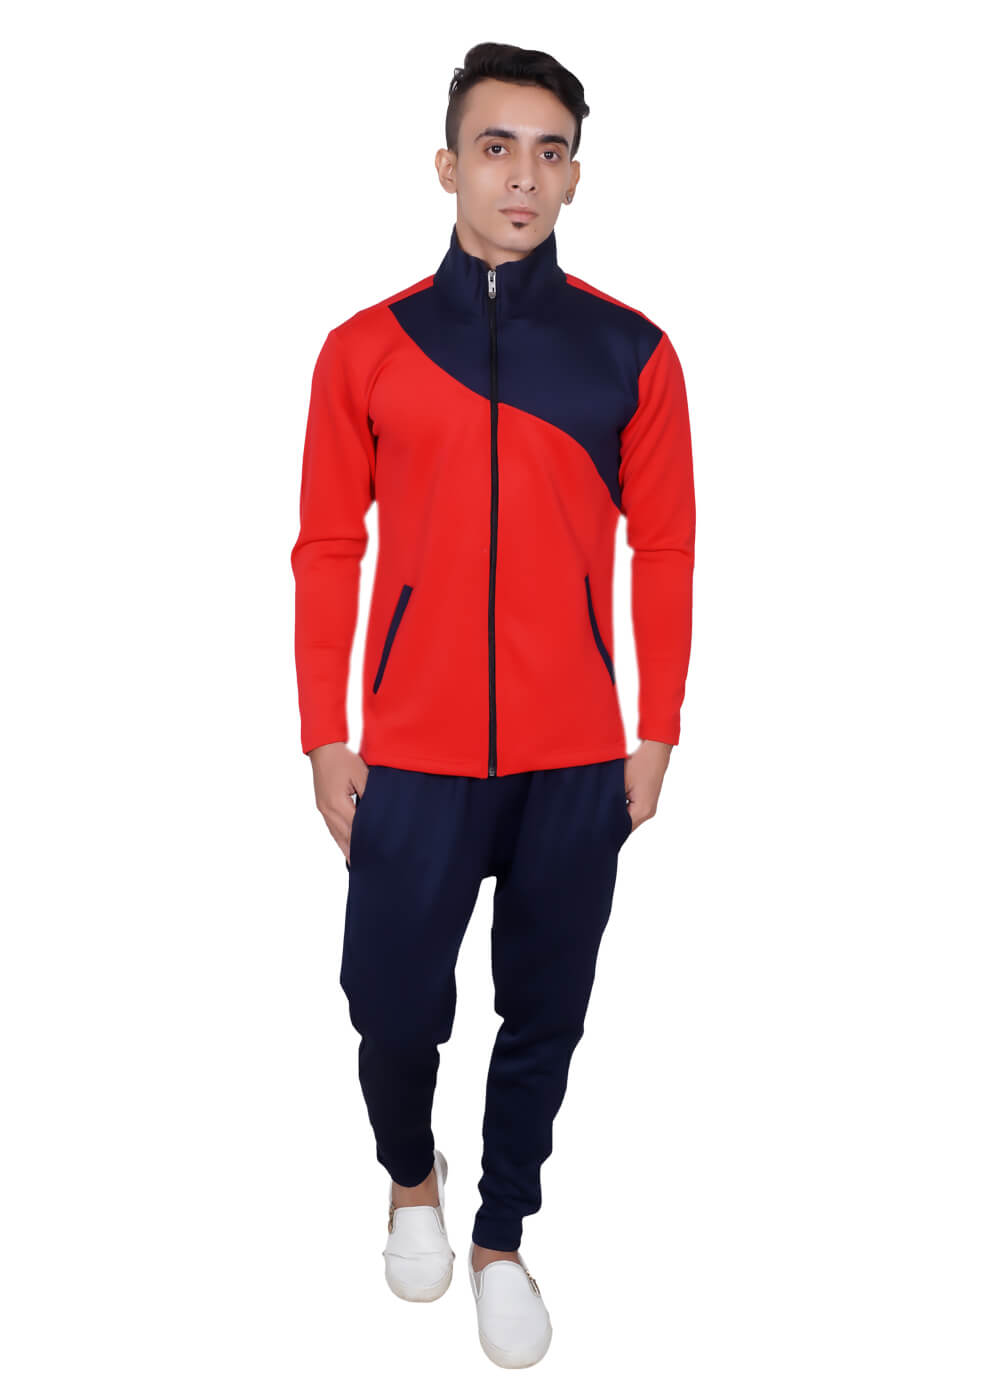 Cheap Tracksuits Manufacturers in Puerto-rico